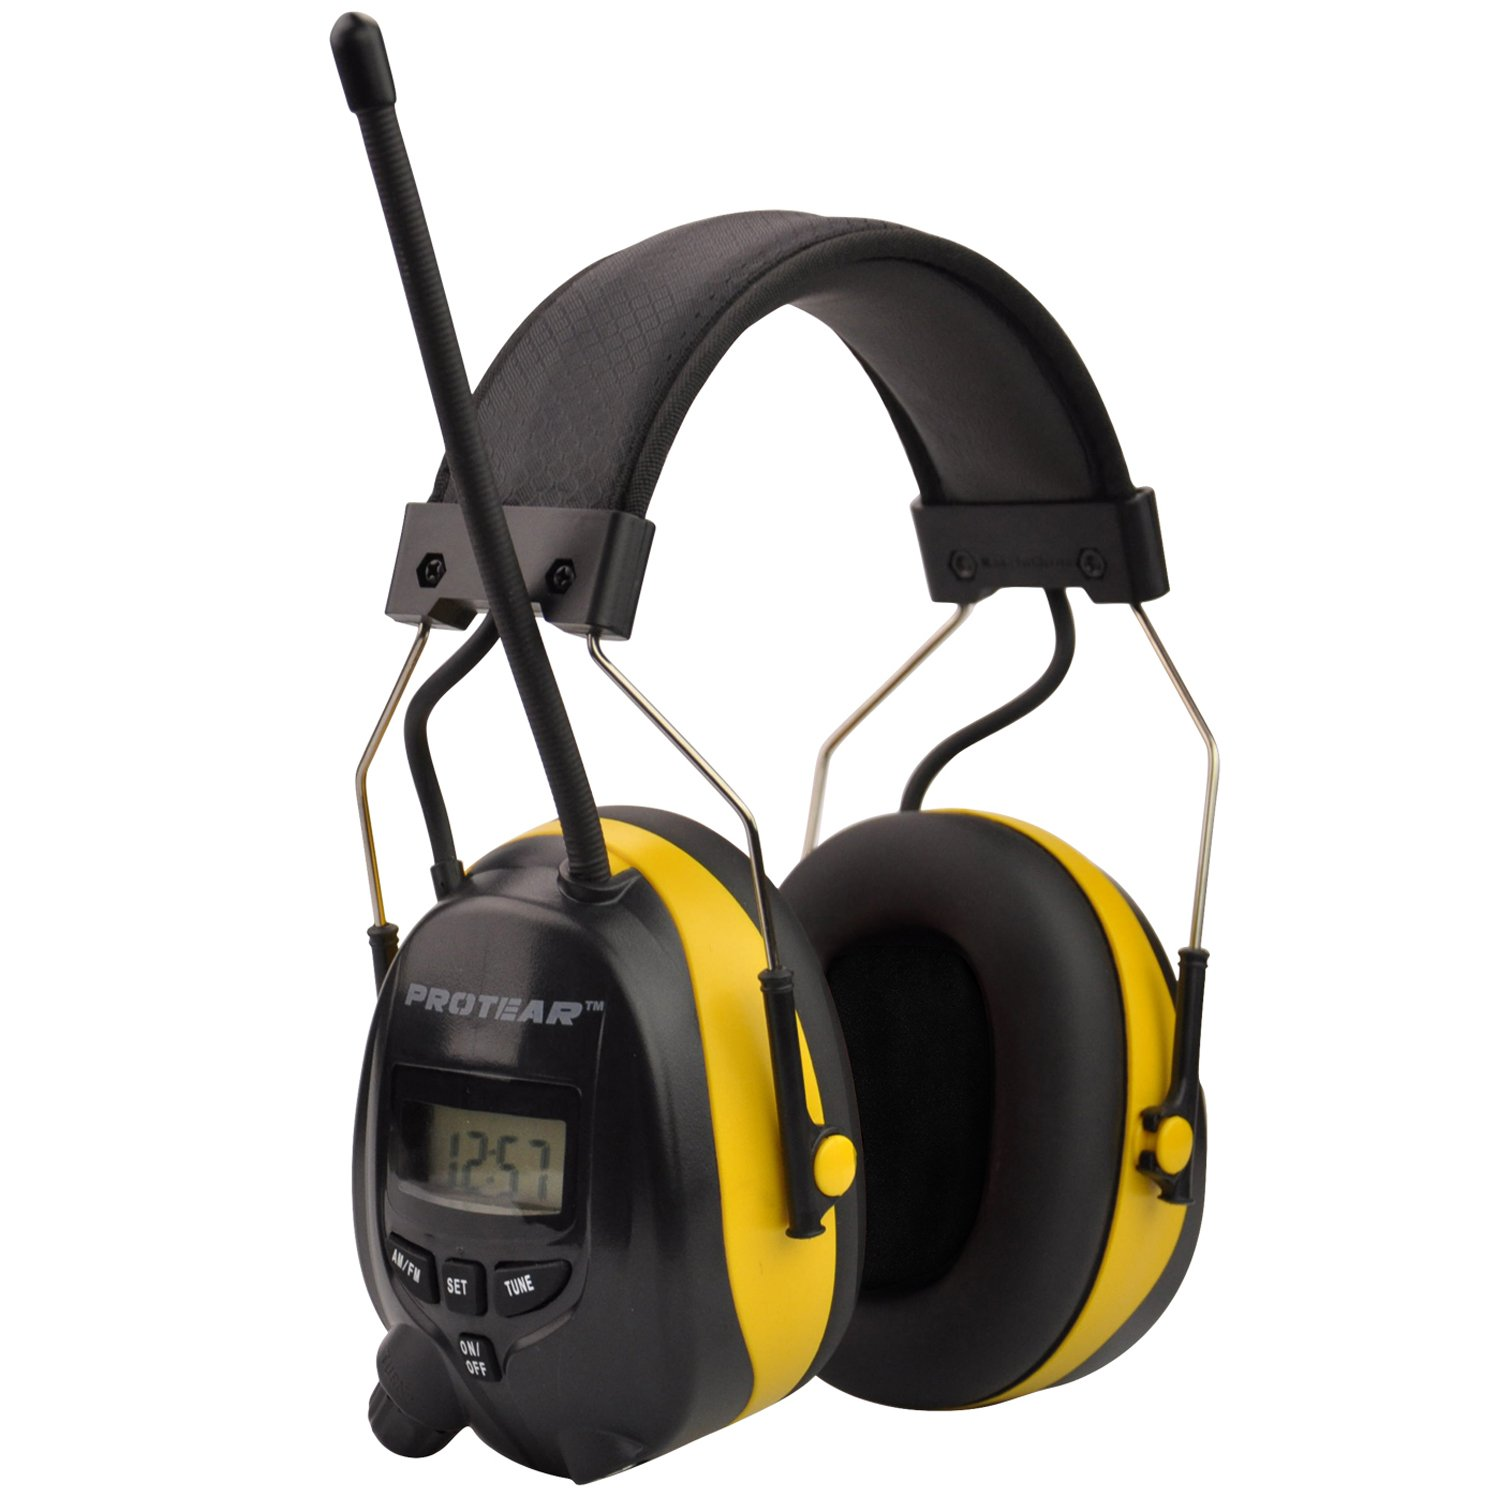 Protear Radio Ear Defenders Hearing Protector Safety Earmuffs, with AM/FM Radio MP3 Compatible, Electronic Noise Reduction Rate 25dB for Working-Yellow